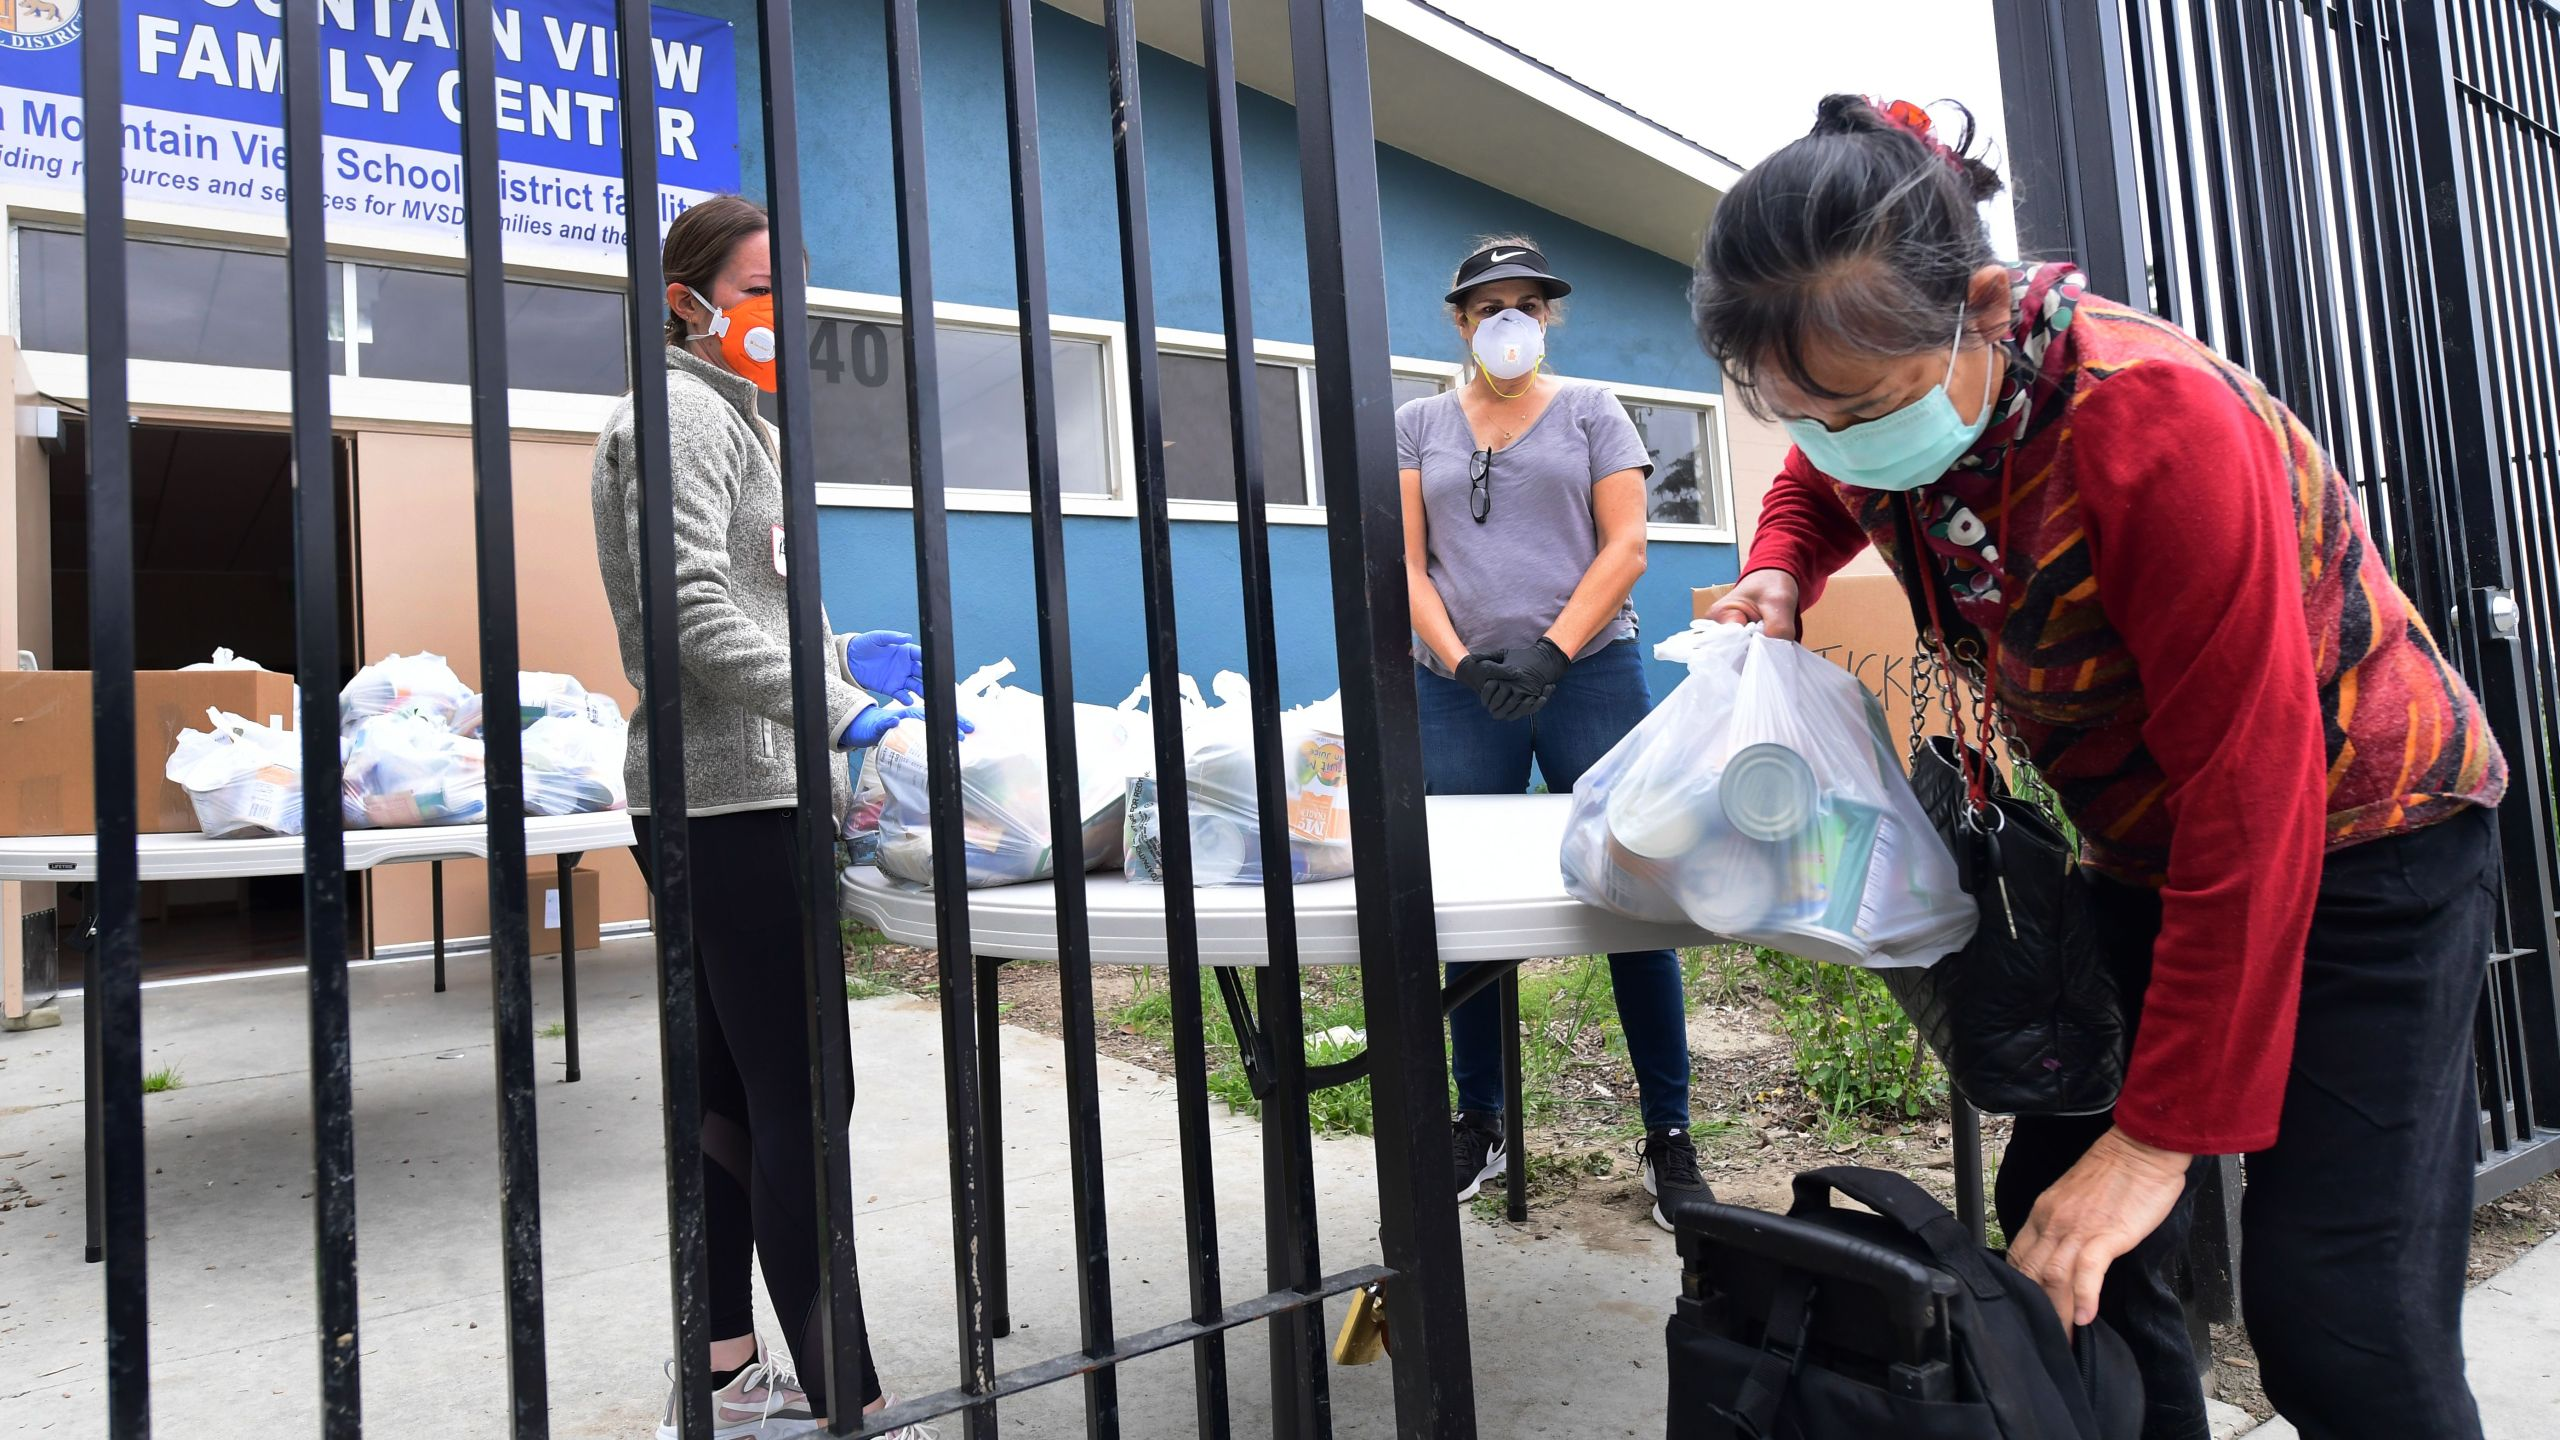 Volunteers in masks and gloves watch as a woman loads her bag of groceries at a food bank opened in response to the coronavirus pandemic on April 20, 2020 in El Monte. (Frederic J. BROWN / AFP/Getty Images)